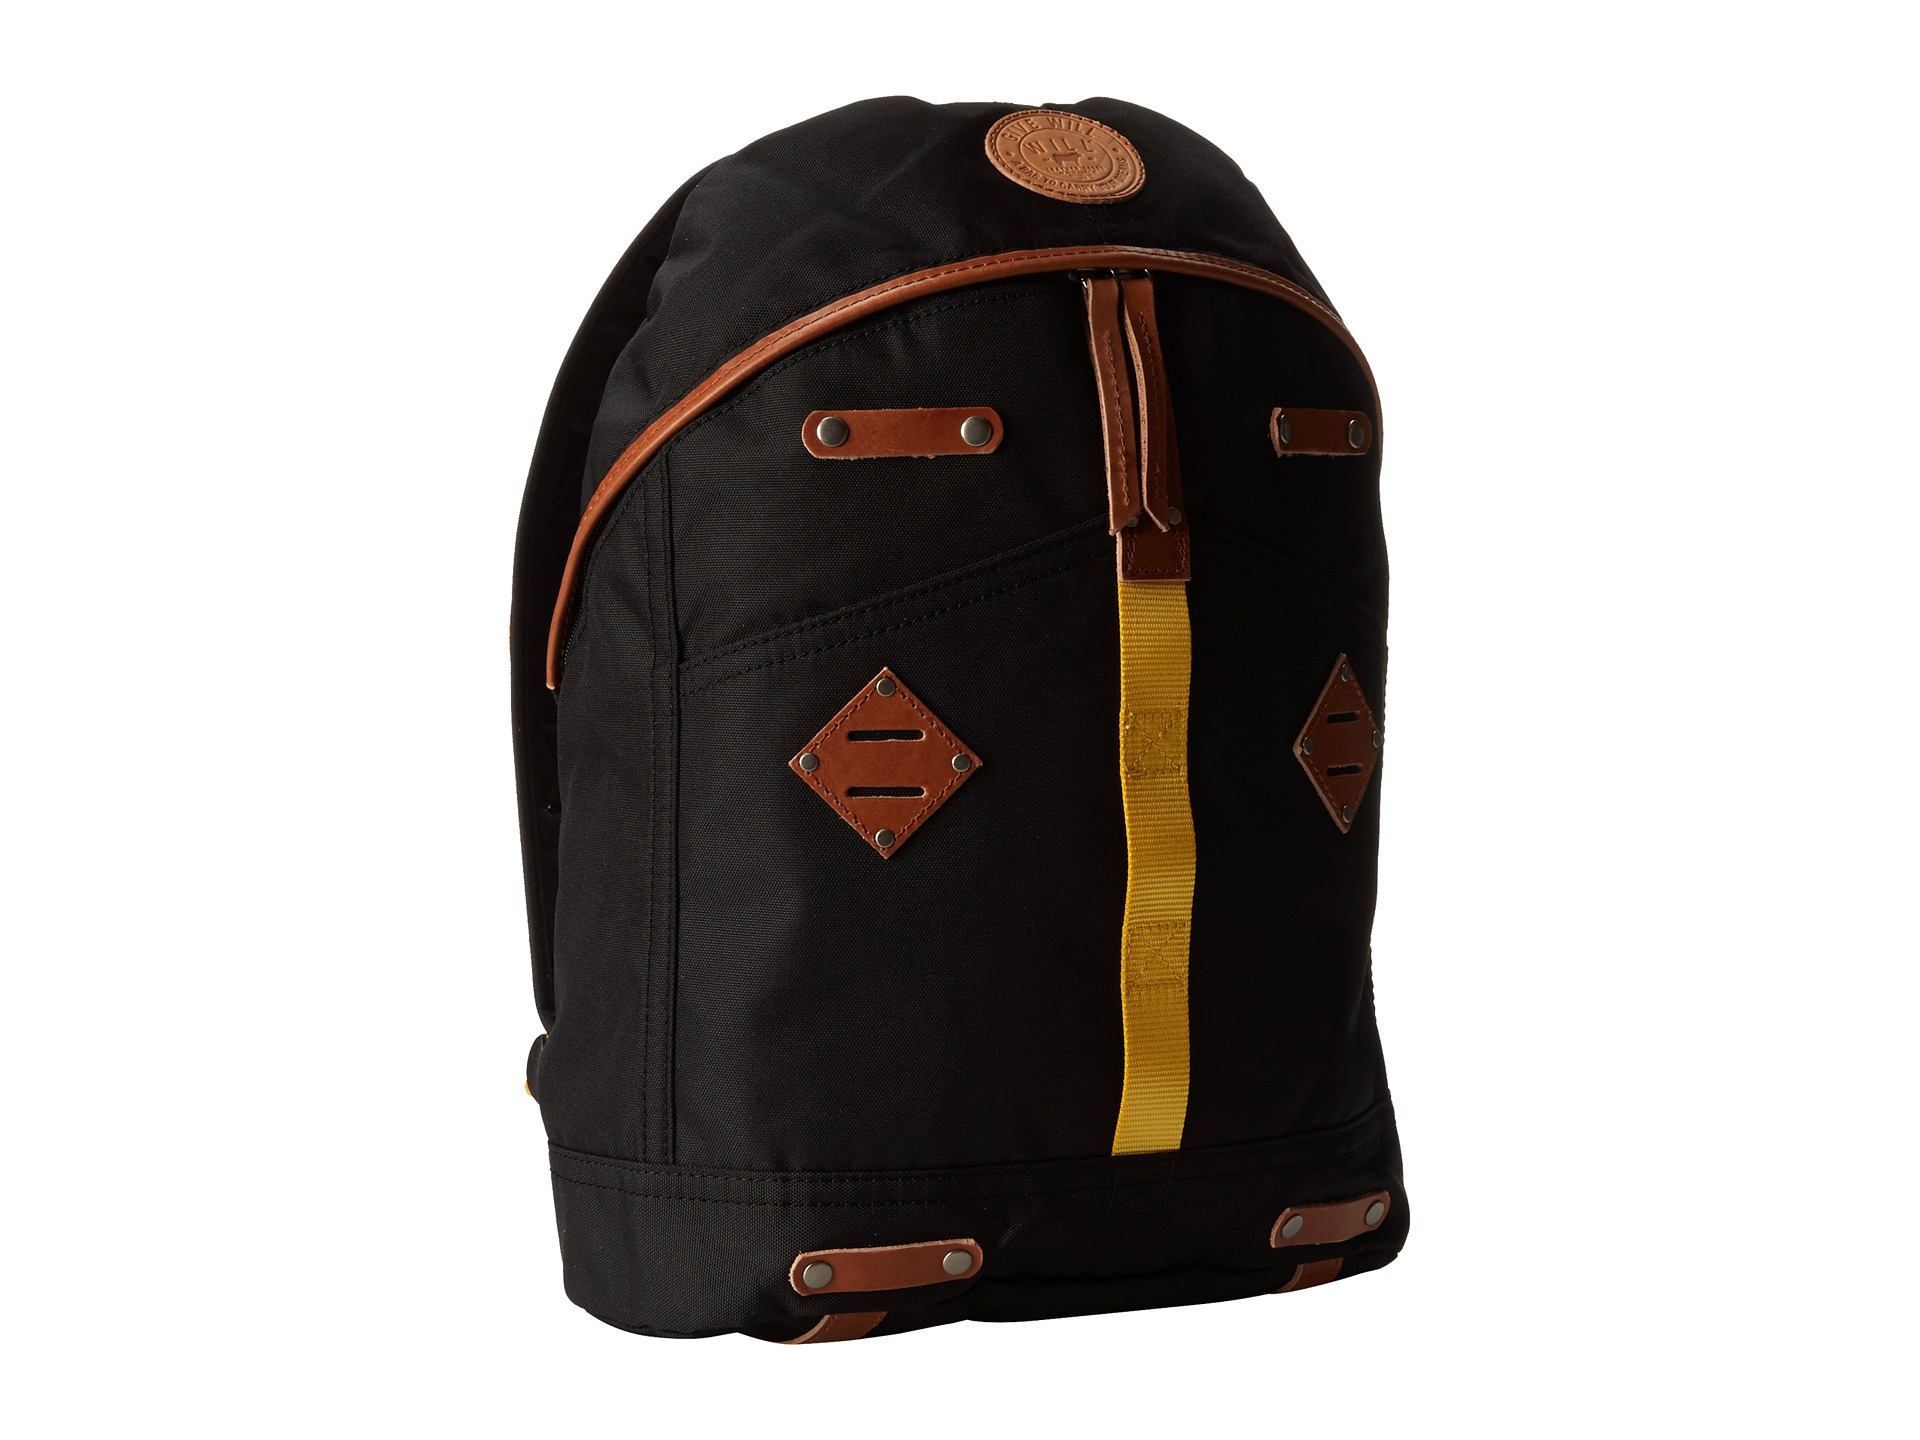 Lyst - Will Leather Goods Give Will Large Backpack in Black for Men 80759fd07f5d